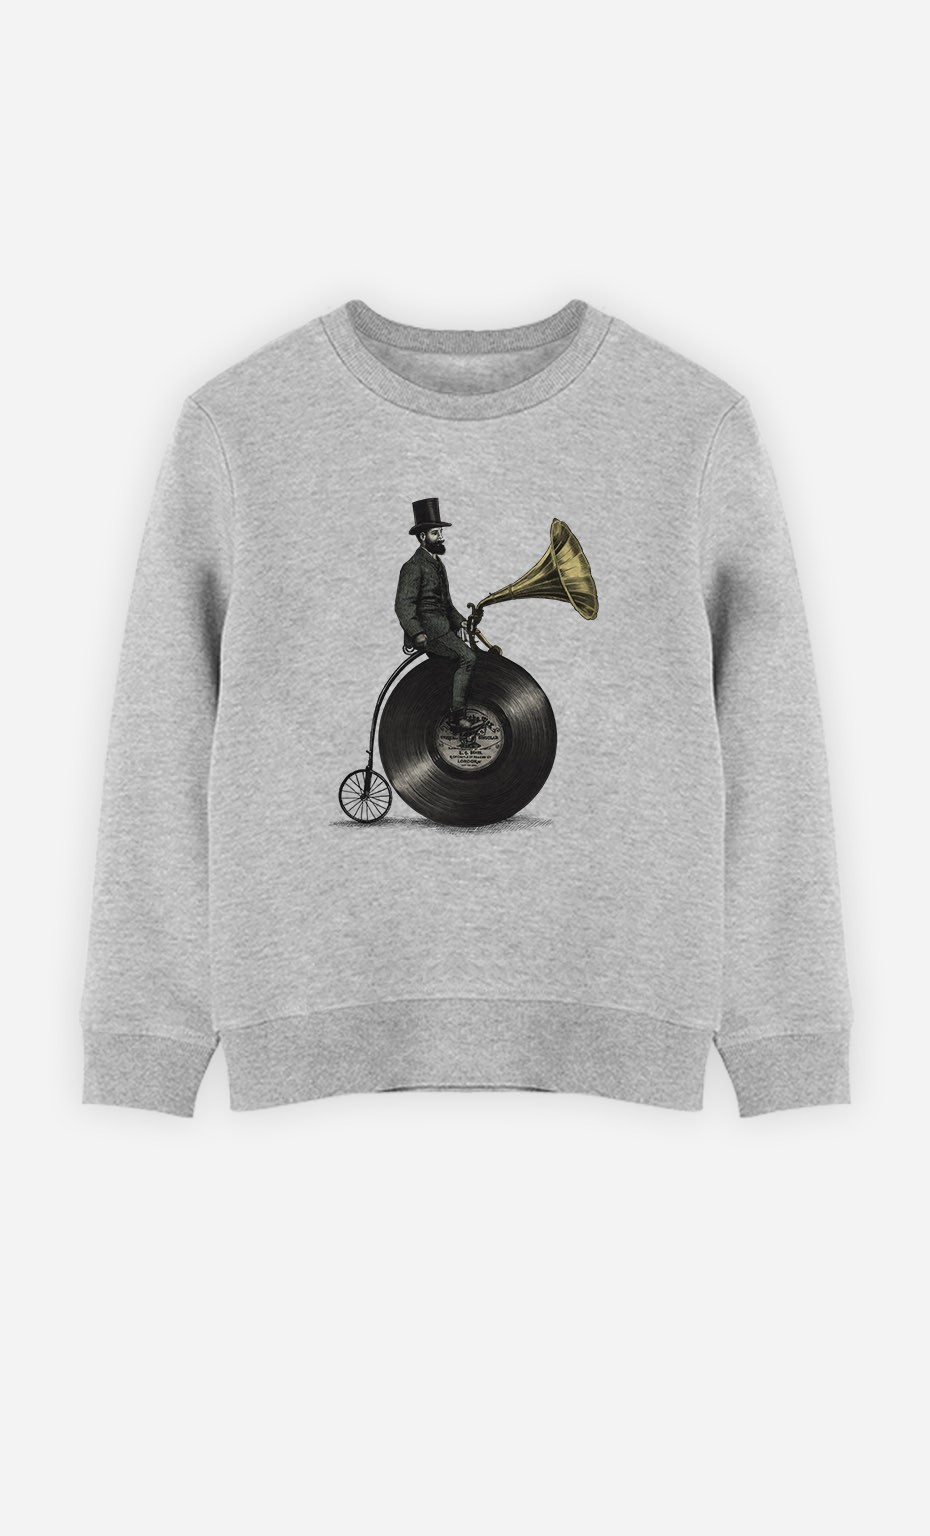 Sweatshirt Music Man